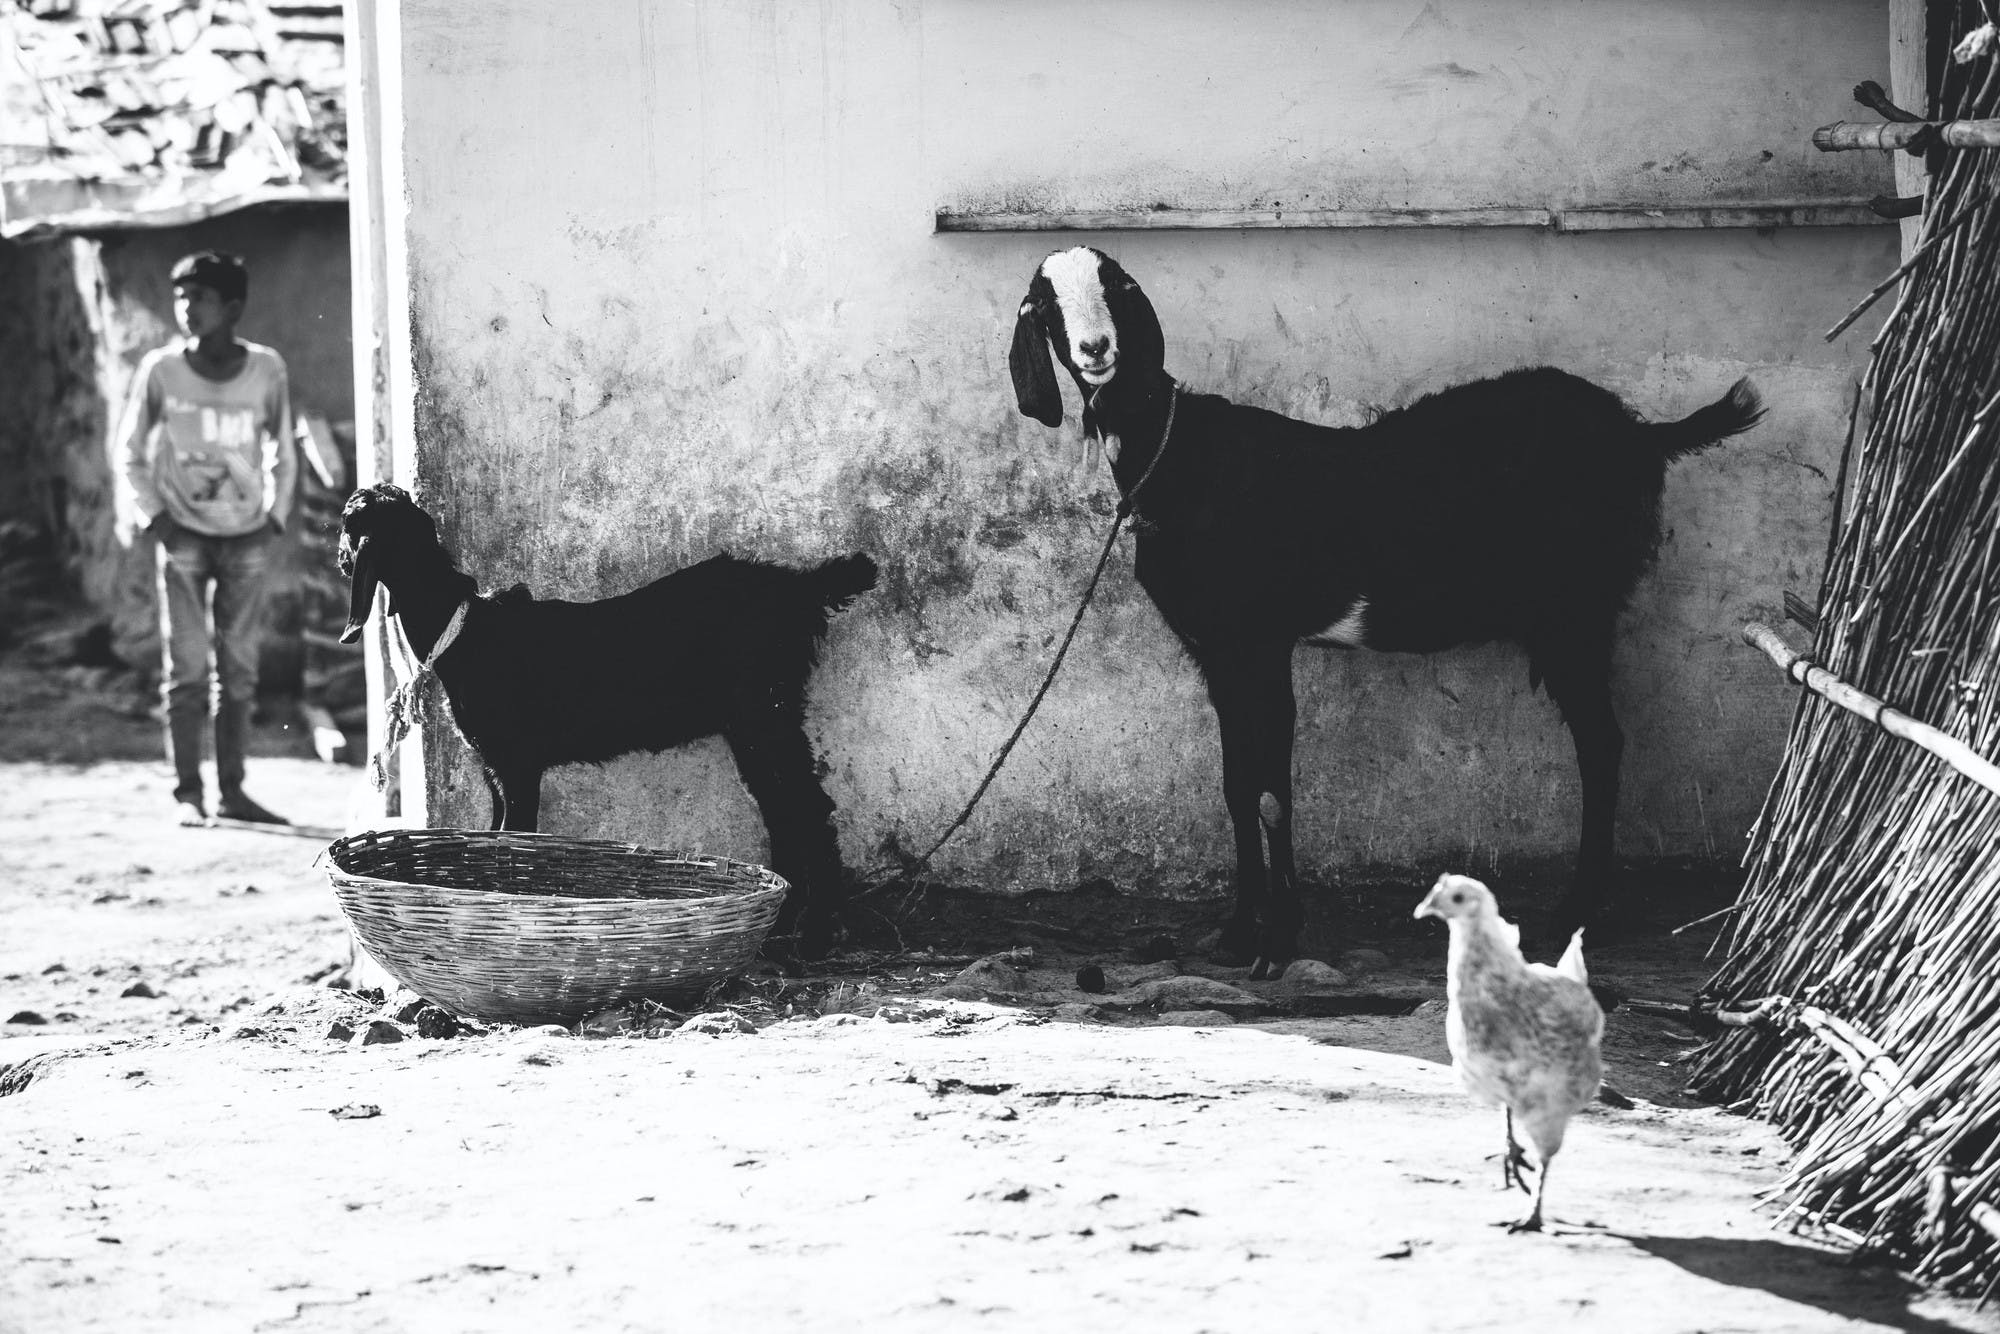 Goats make a difference all around the globe. These goats are making a difference in India.